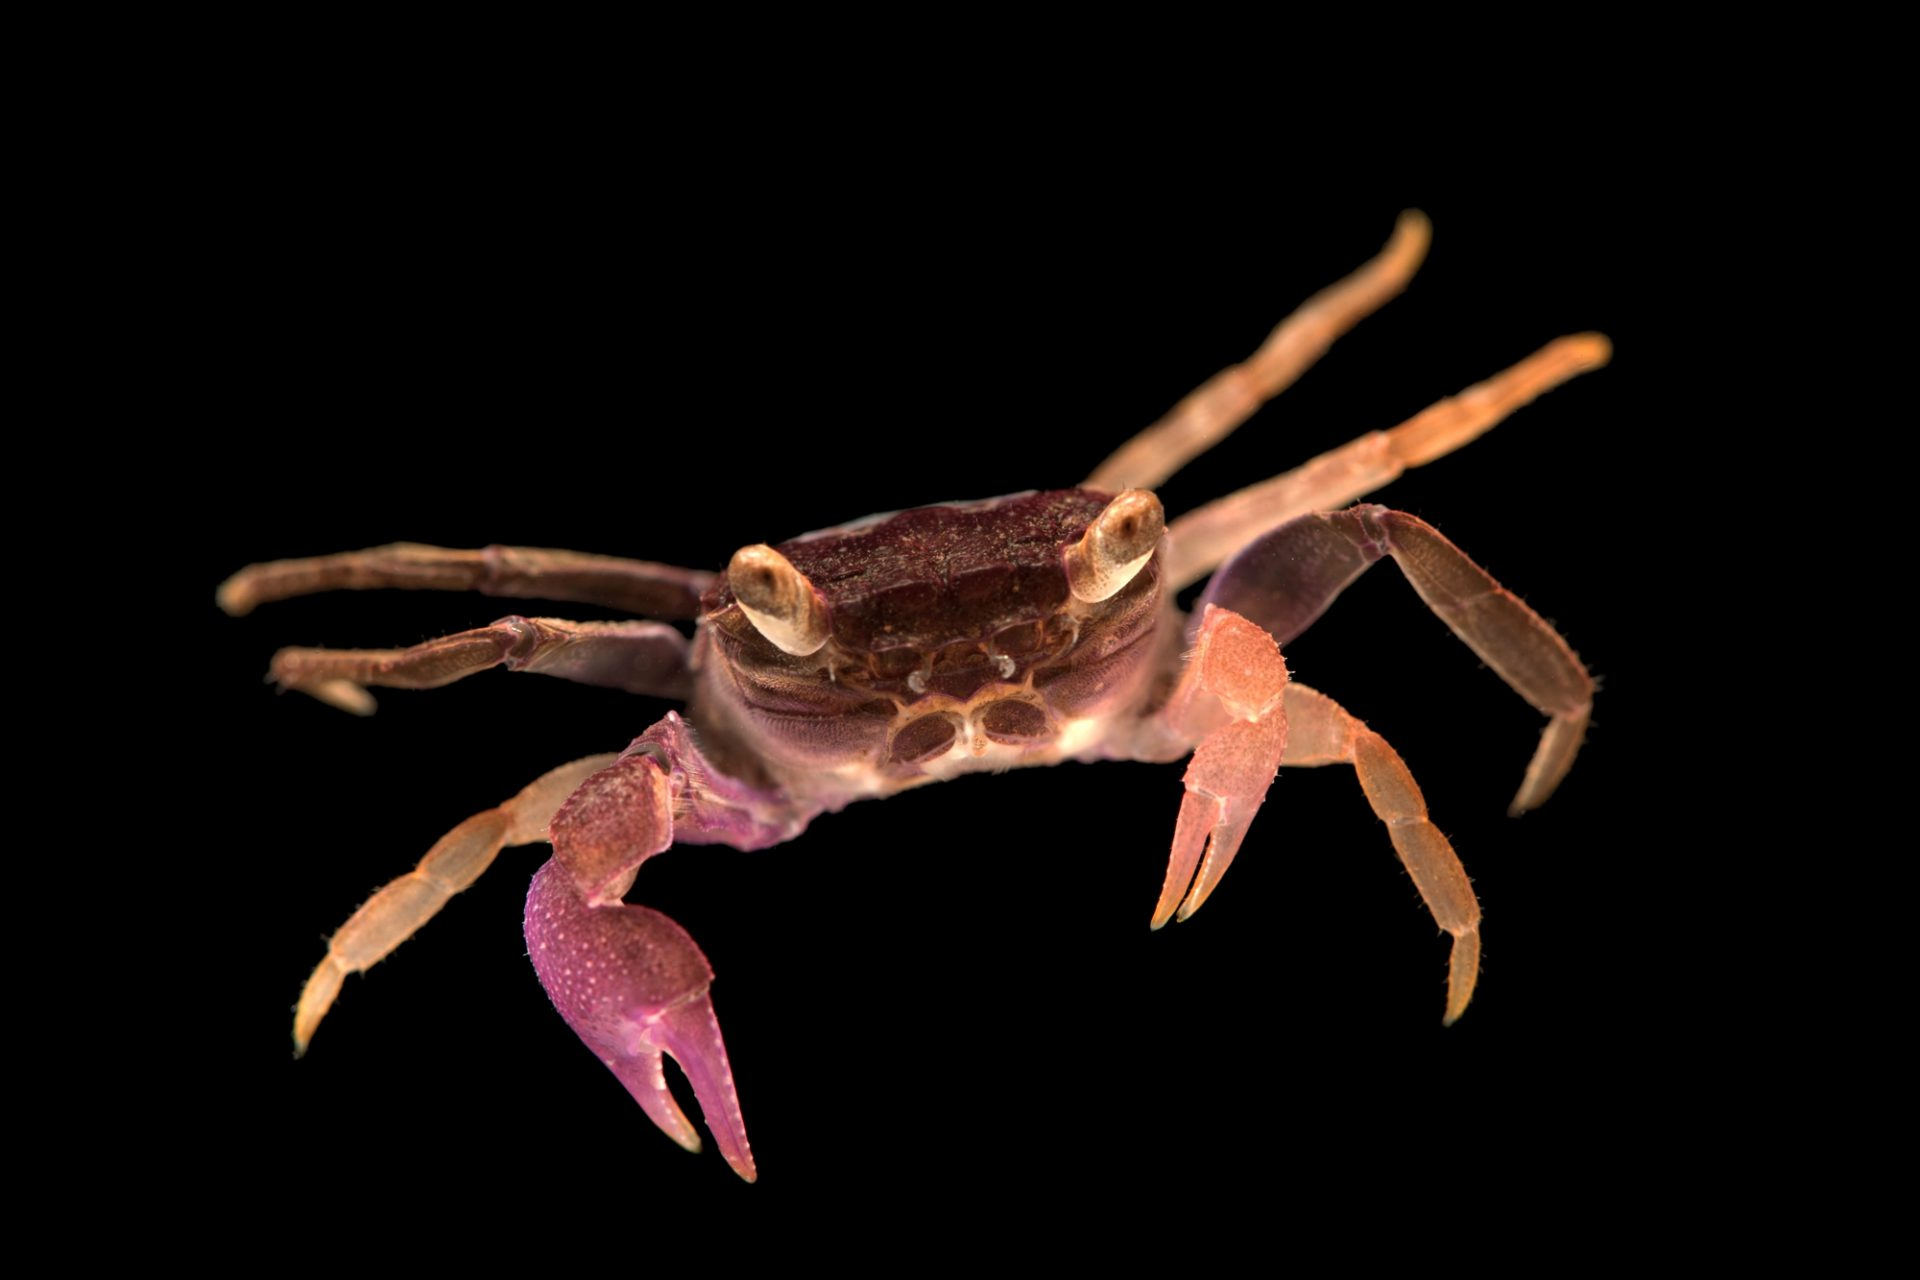 Photo: Purple vamprie crab (Geosesarma dennerle) from a private collection.